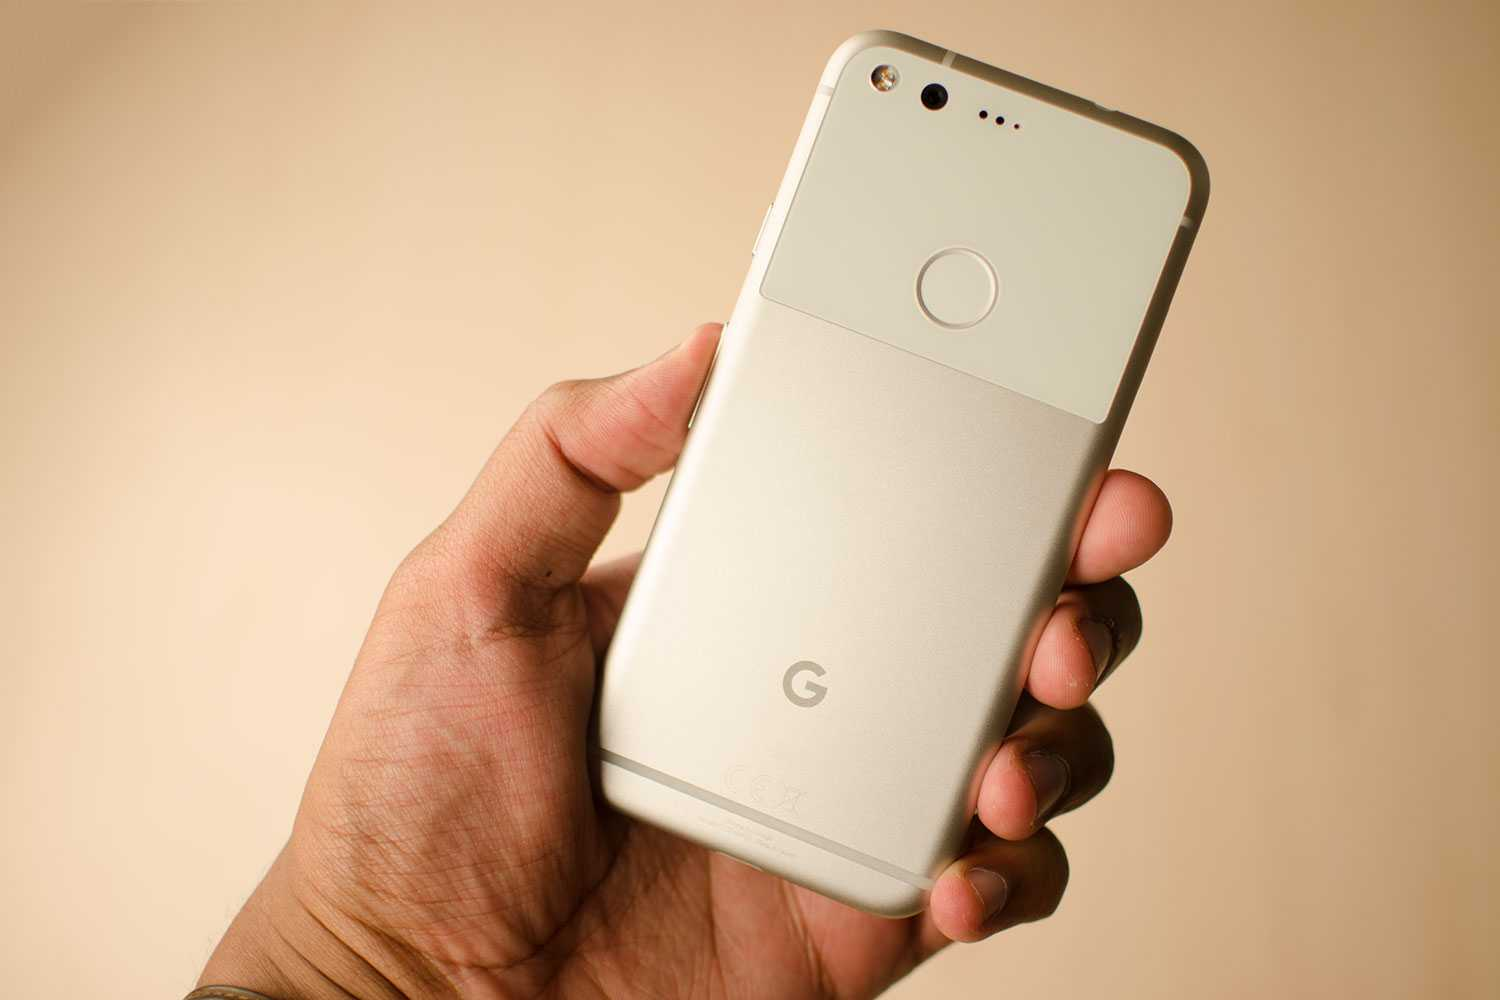 Google Pixel 2 details leaked with images, to have Snapdragon 835